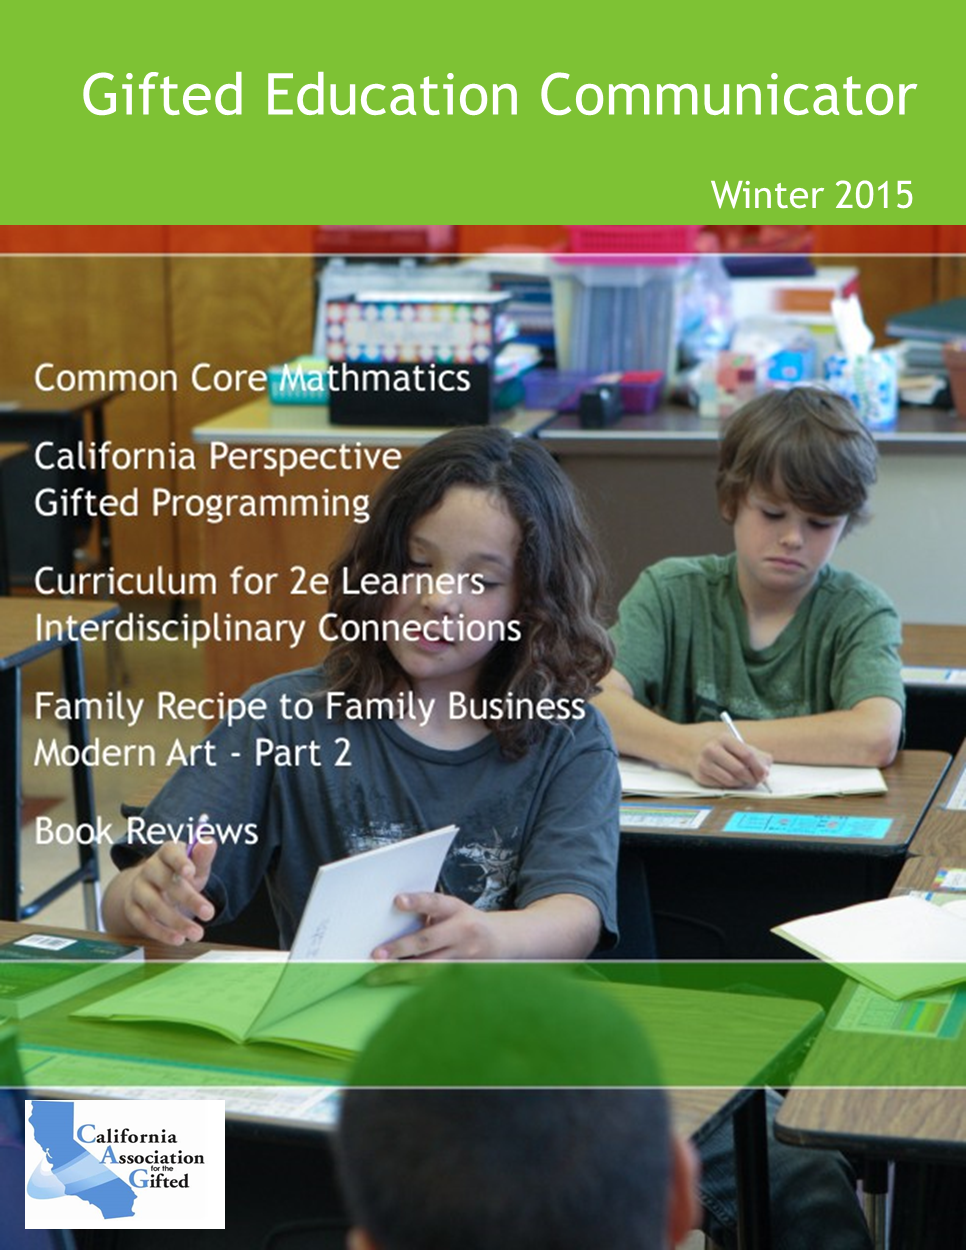 GECWinter2015Cover